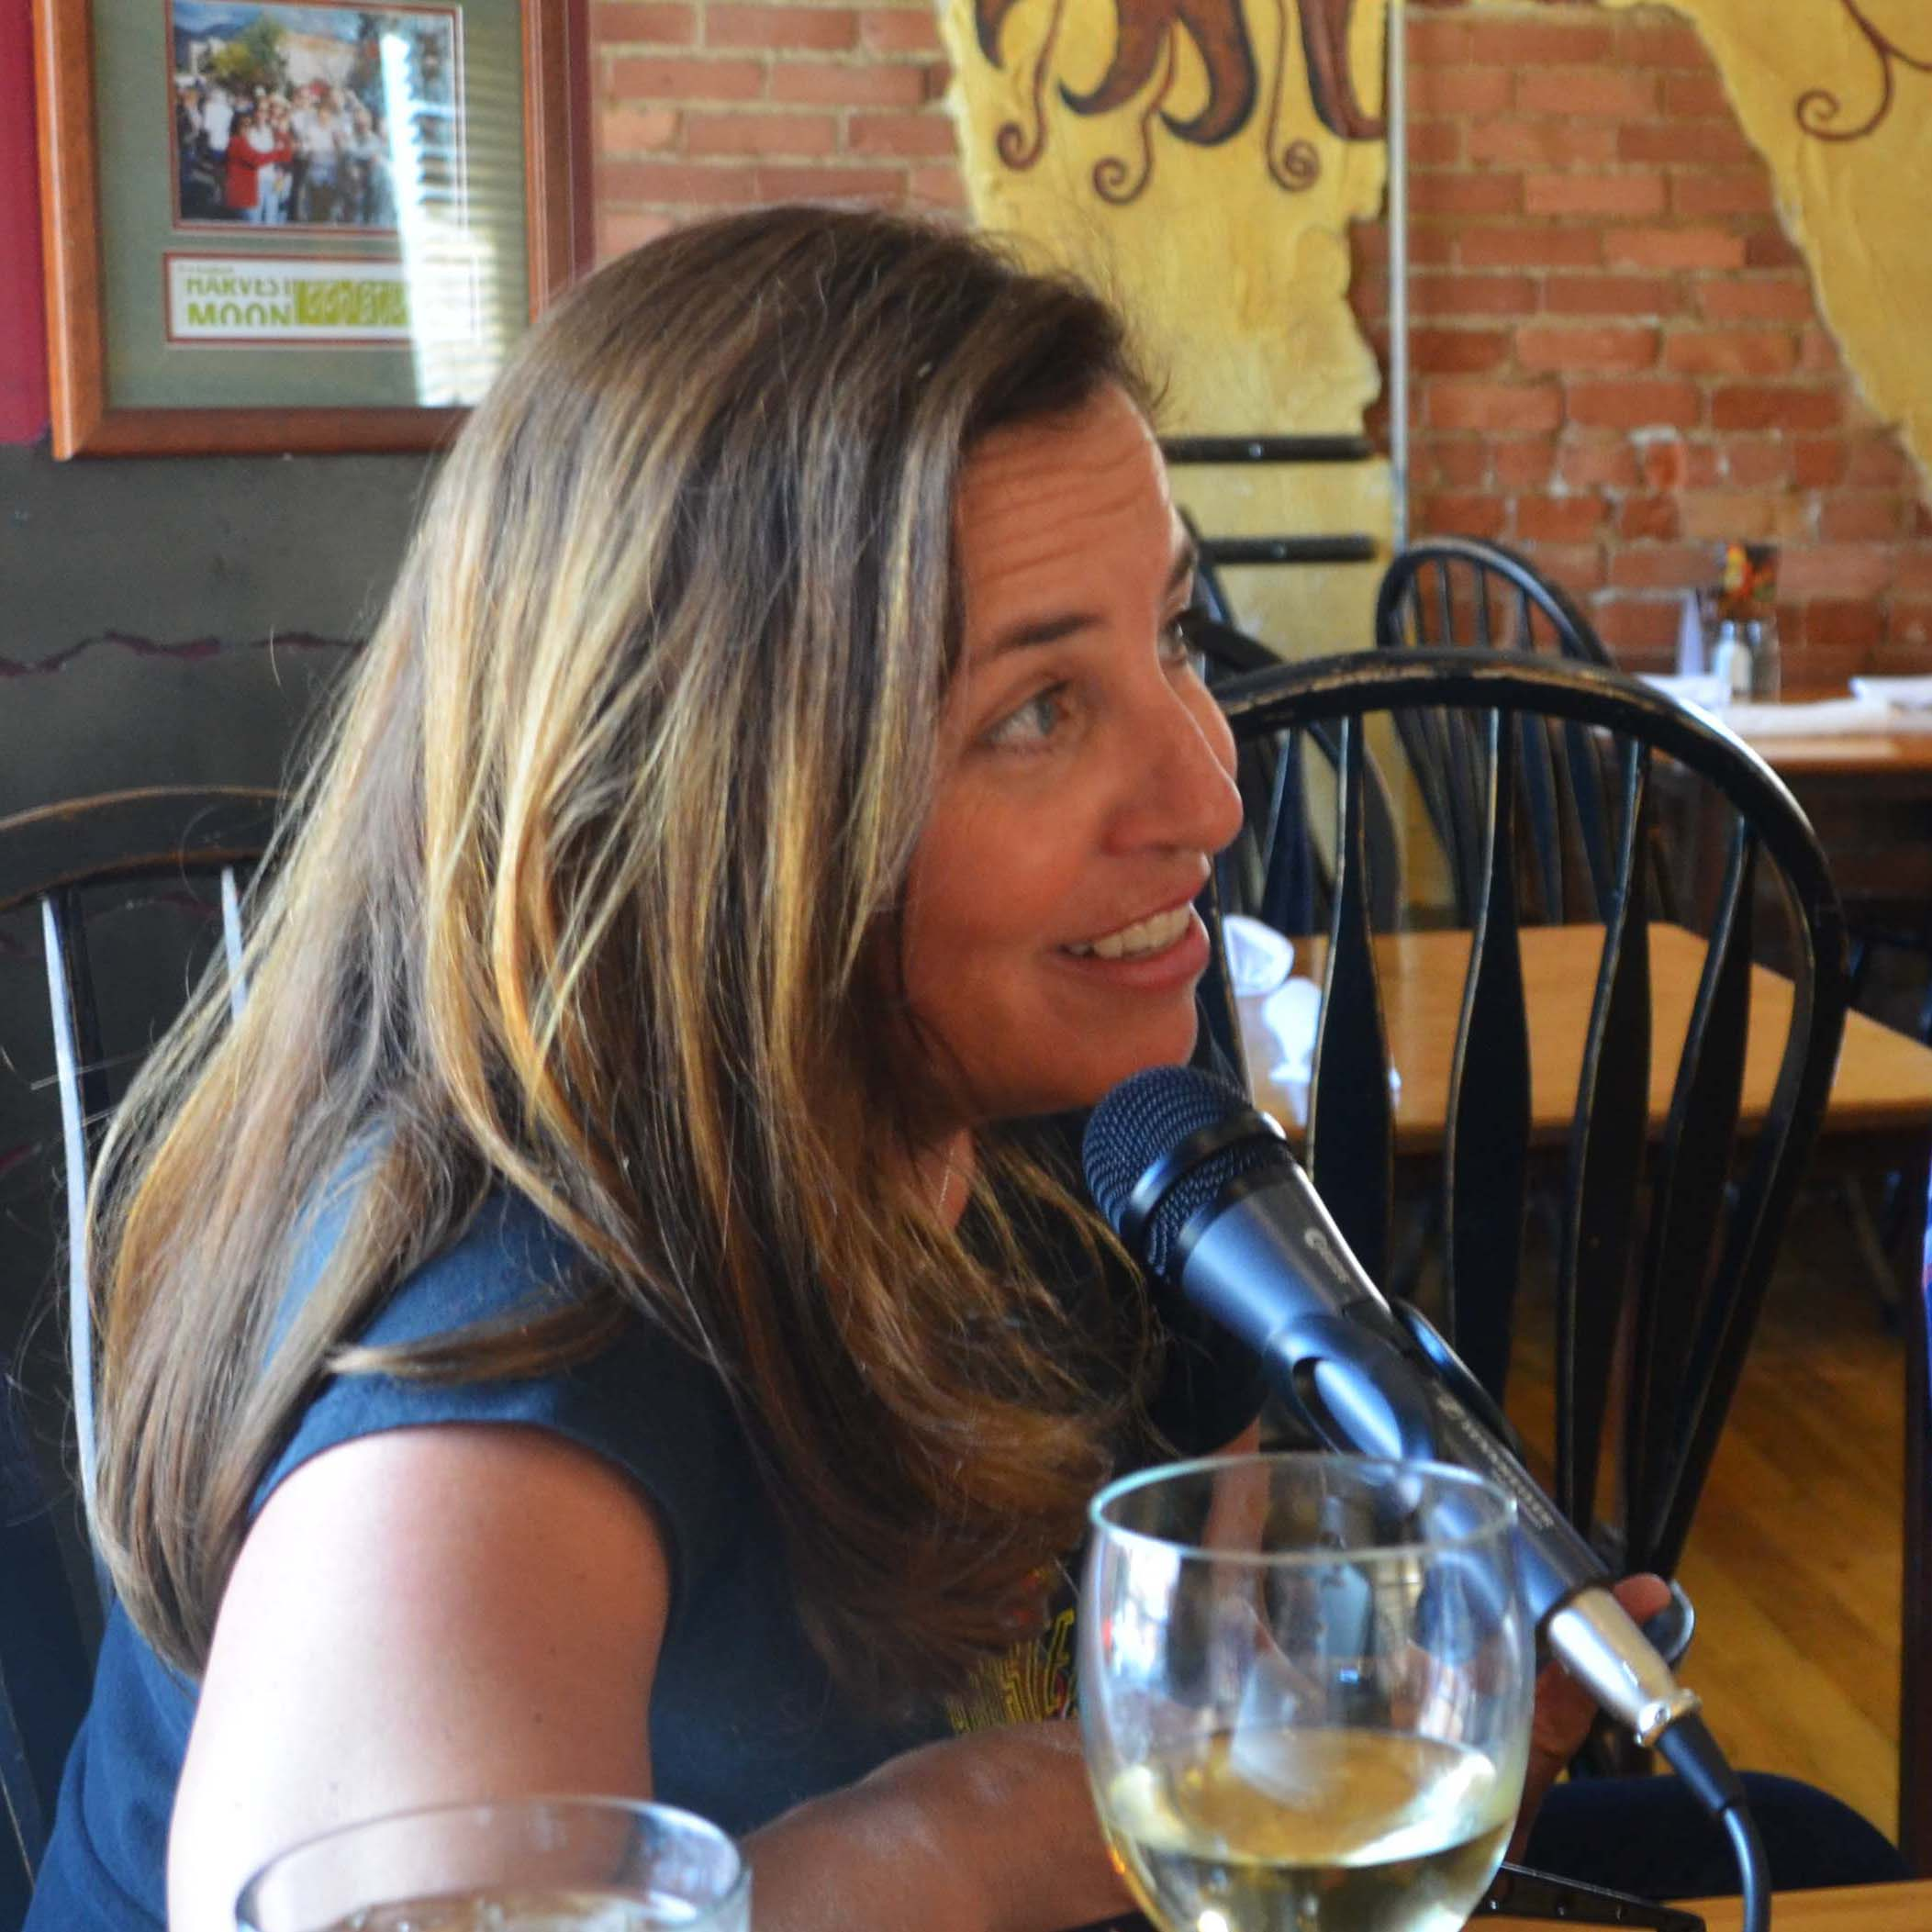 Kym Buttschardt - Roosters Brewing Co.